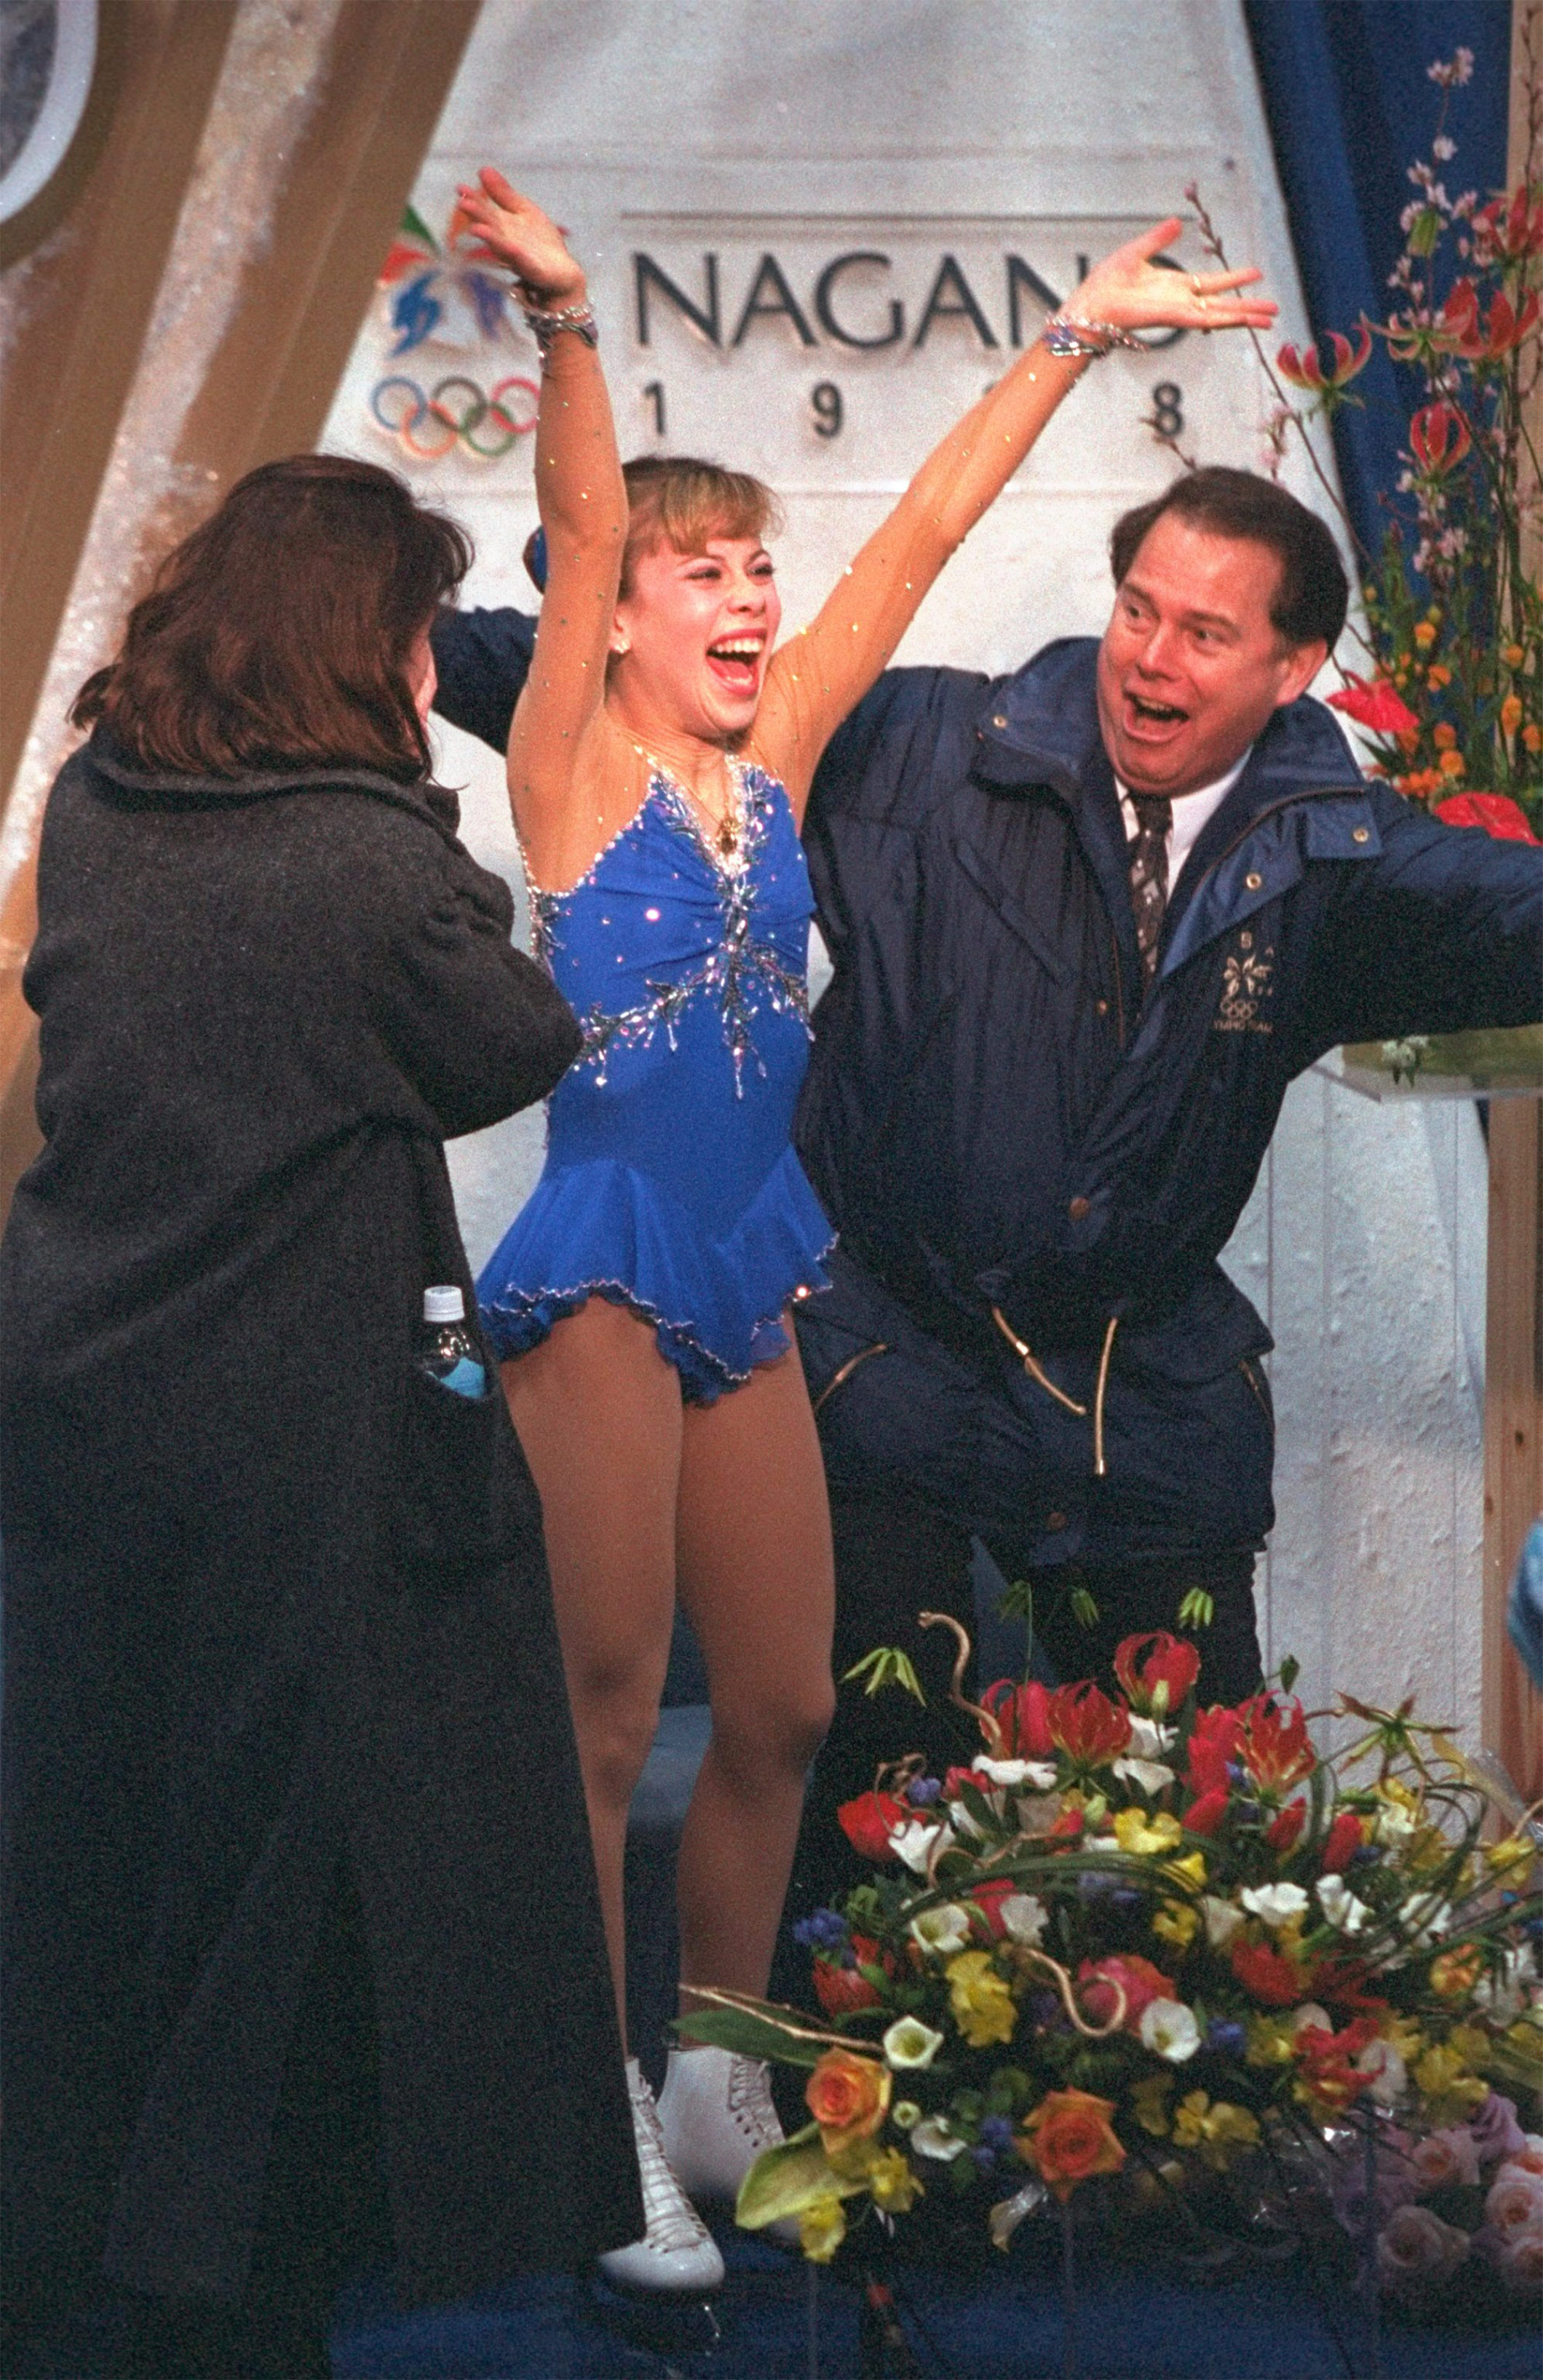 Tara Lipinski of the USA reacts as her scores flash on the screen during the free skate competition at White Ring Arena during the 1998 Winter Olympic Games in Nagano, Japan. Lipinski won the gold medal in the event.